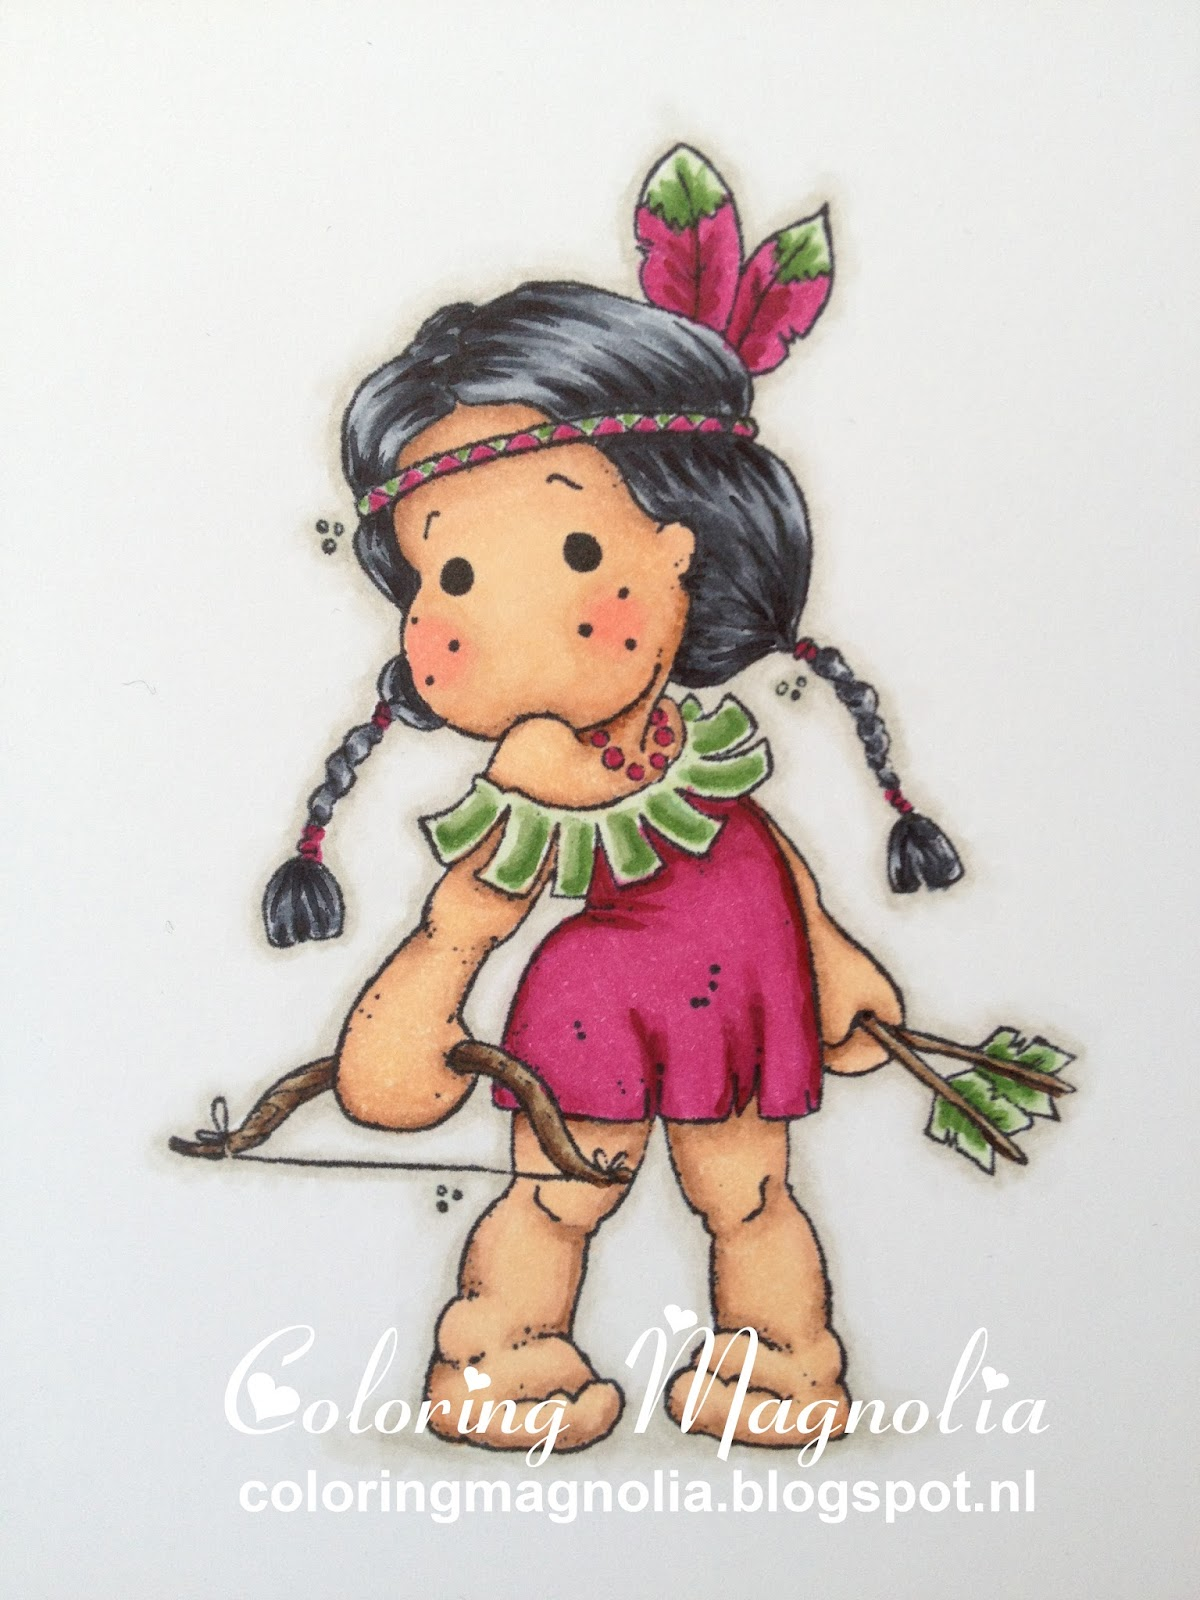 Coloring Magnolia Stamp 2013 Once Upon A Time Collection - Indian Tilda